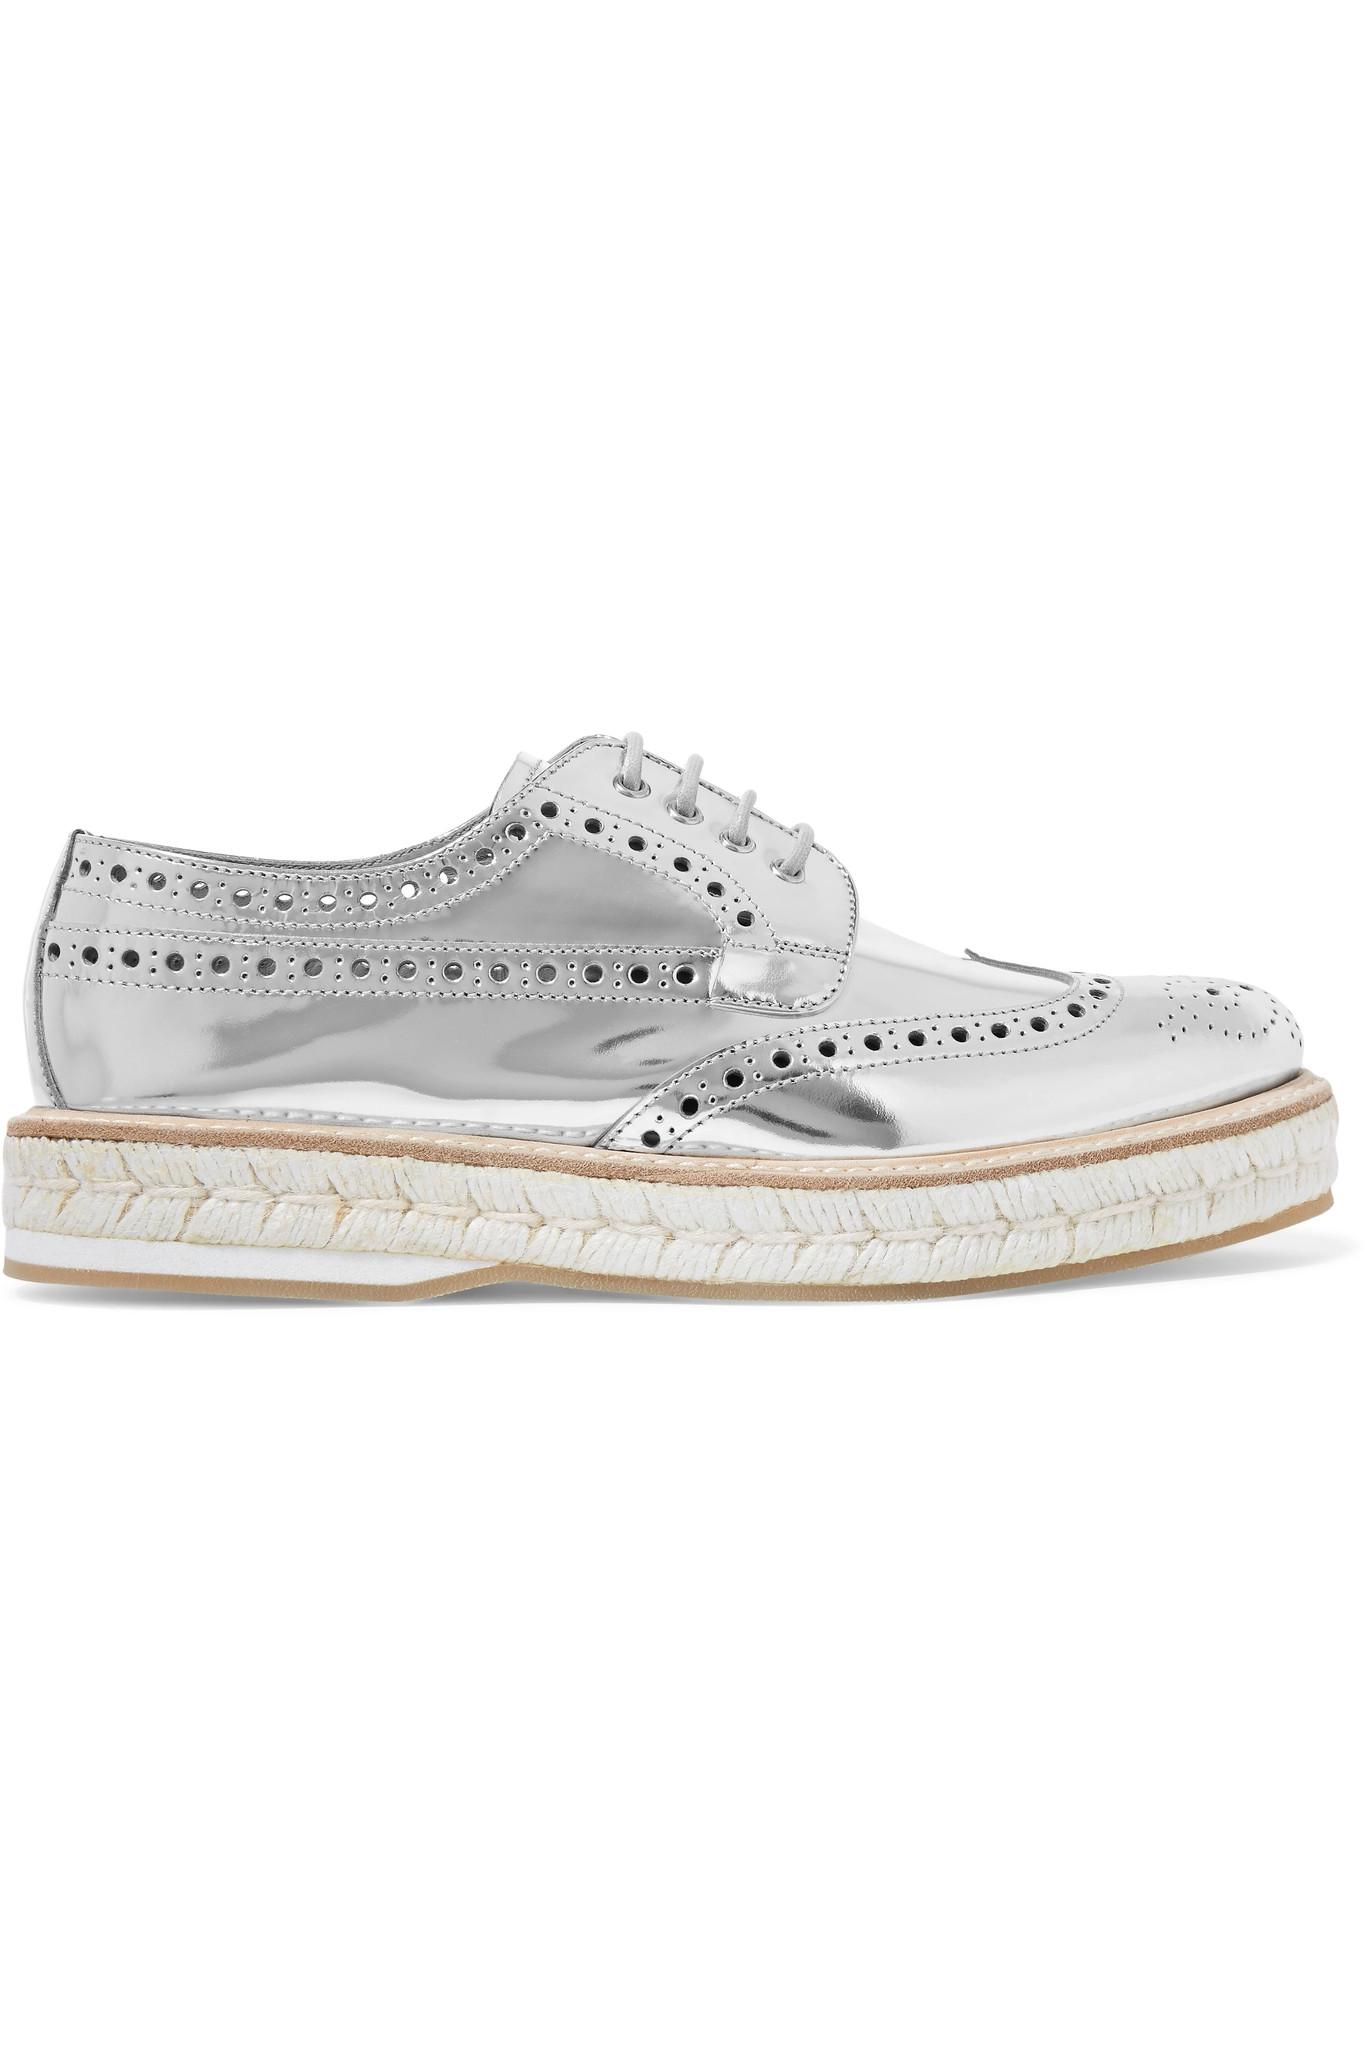 Discount Classic Clearance Factory Outlet Church's Keely 2 Metallic Leather Platform Brogues Hot Sale For Sale Discount Release Dates Pay With Paypal Cheap Online xUhLOgz36